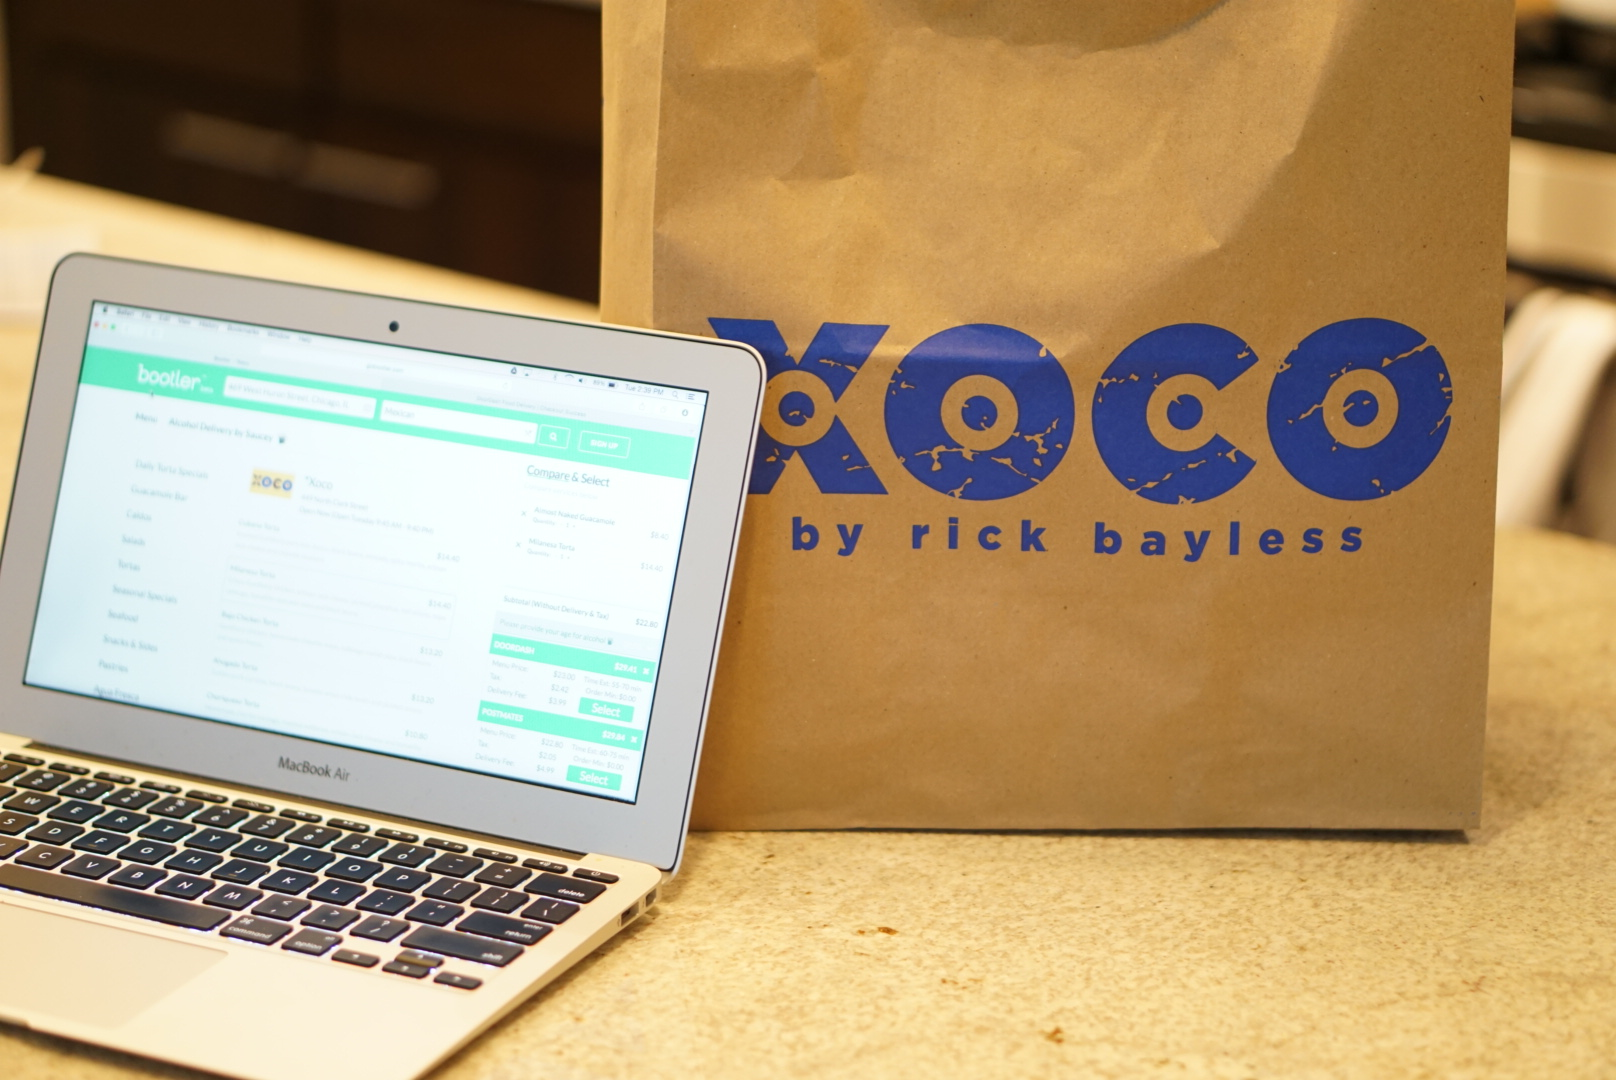 Oh hey Rick Bayless.... Thanks Bootler!